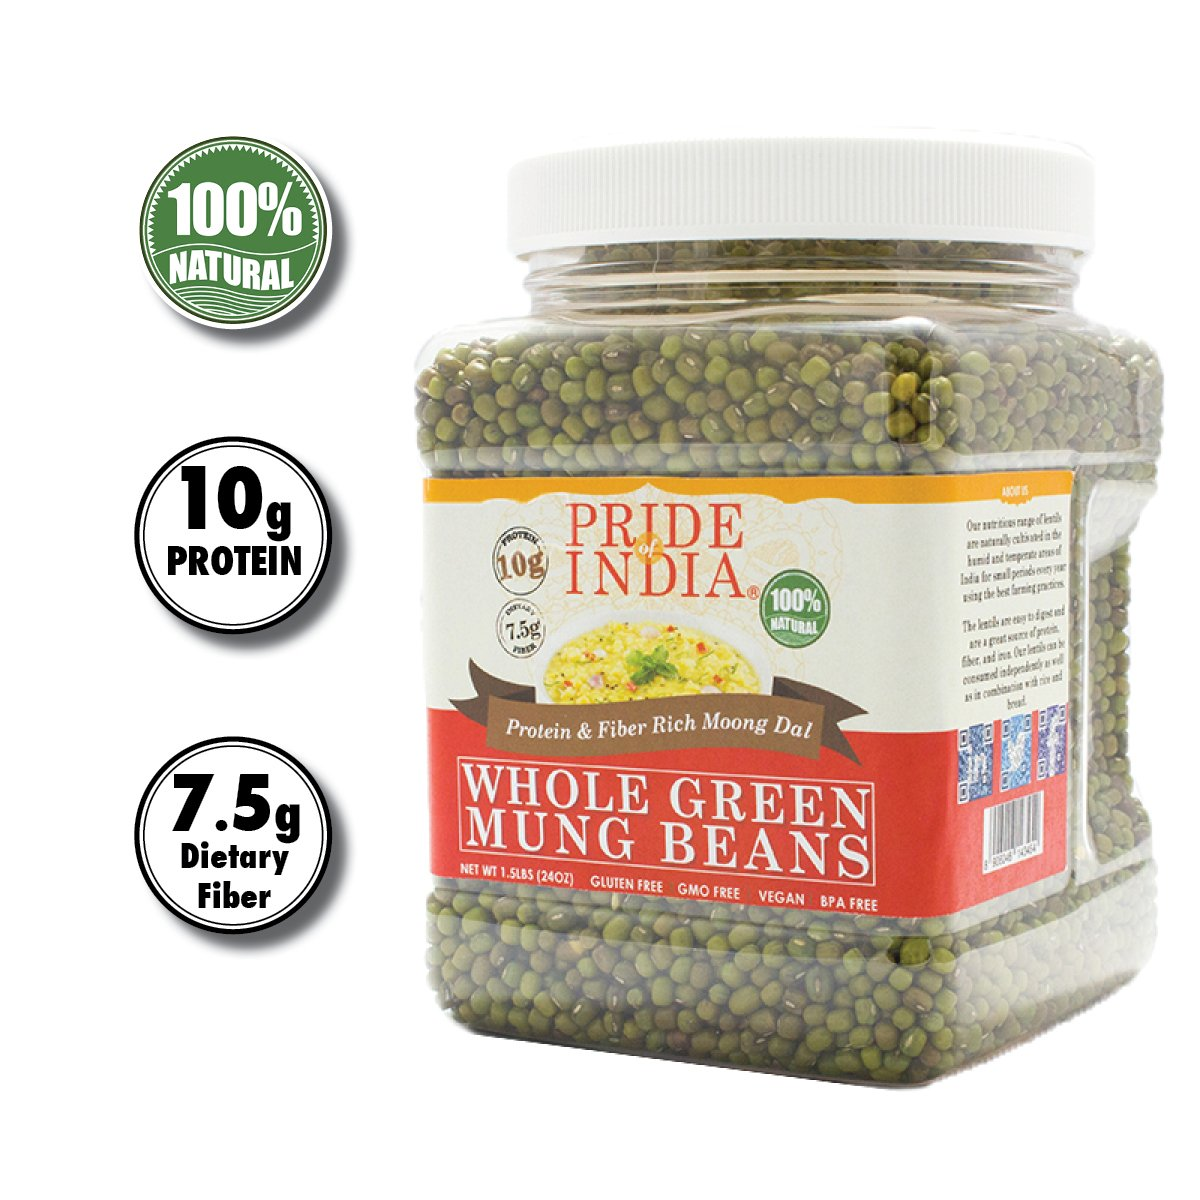 Pride Of India -Whole Mung verde Gram - 1,5 lbs (680 g) Jar ...